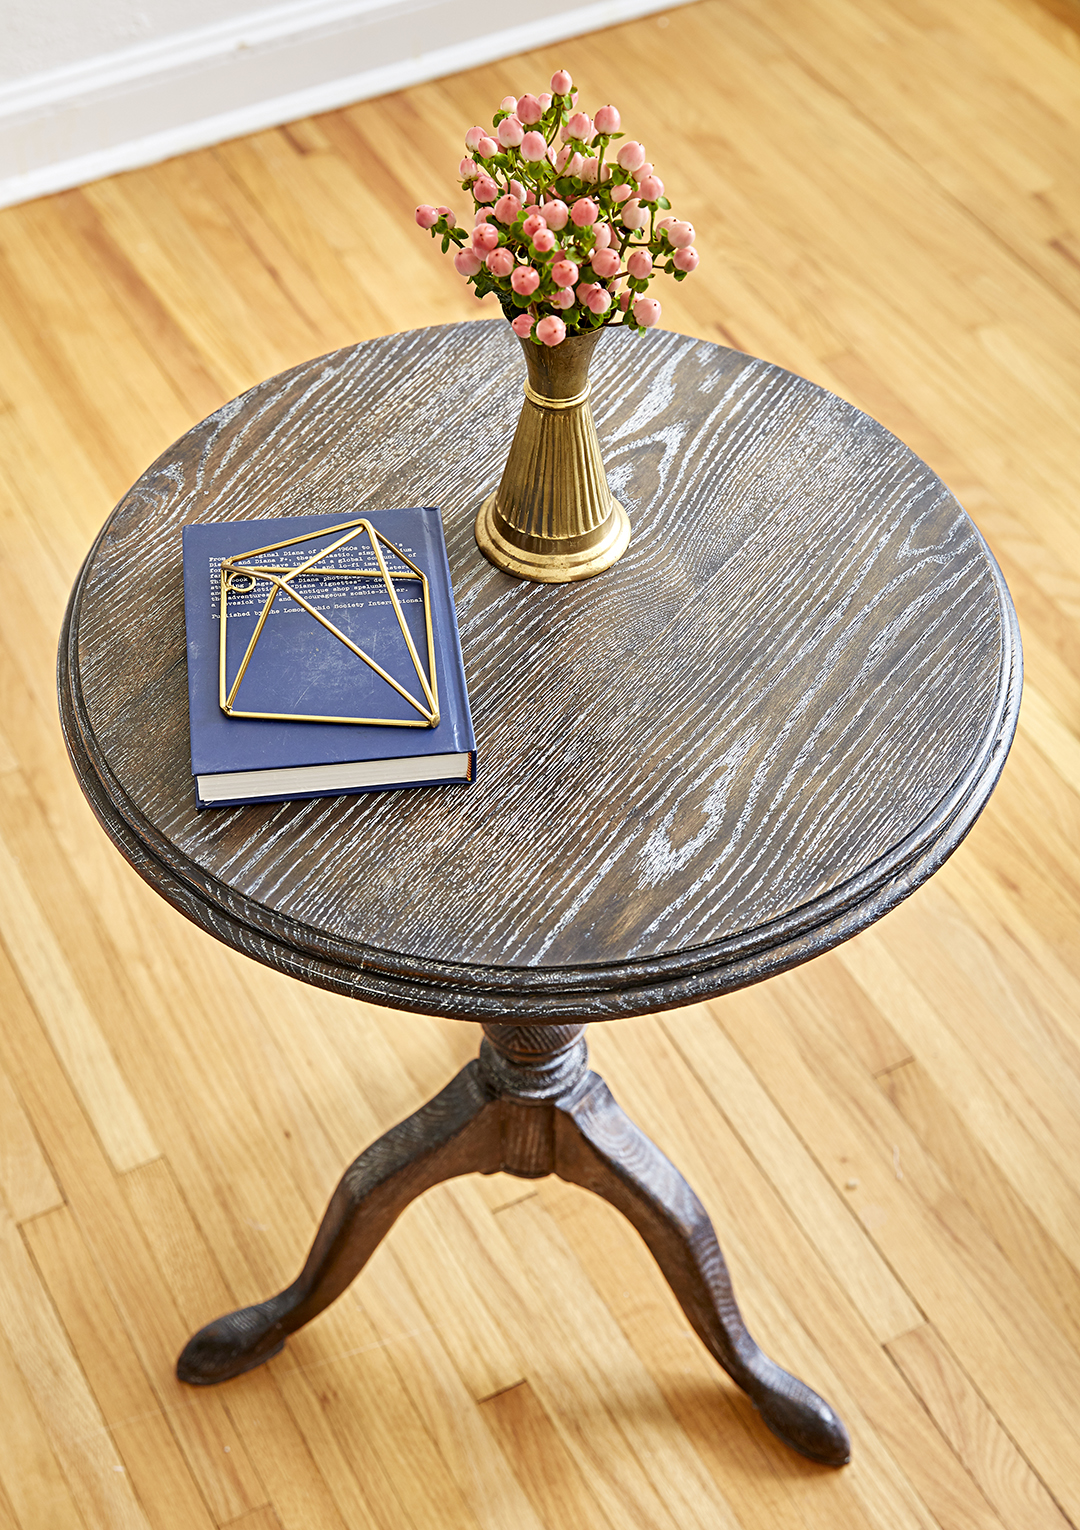 refurbished table with accented grain